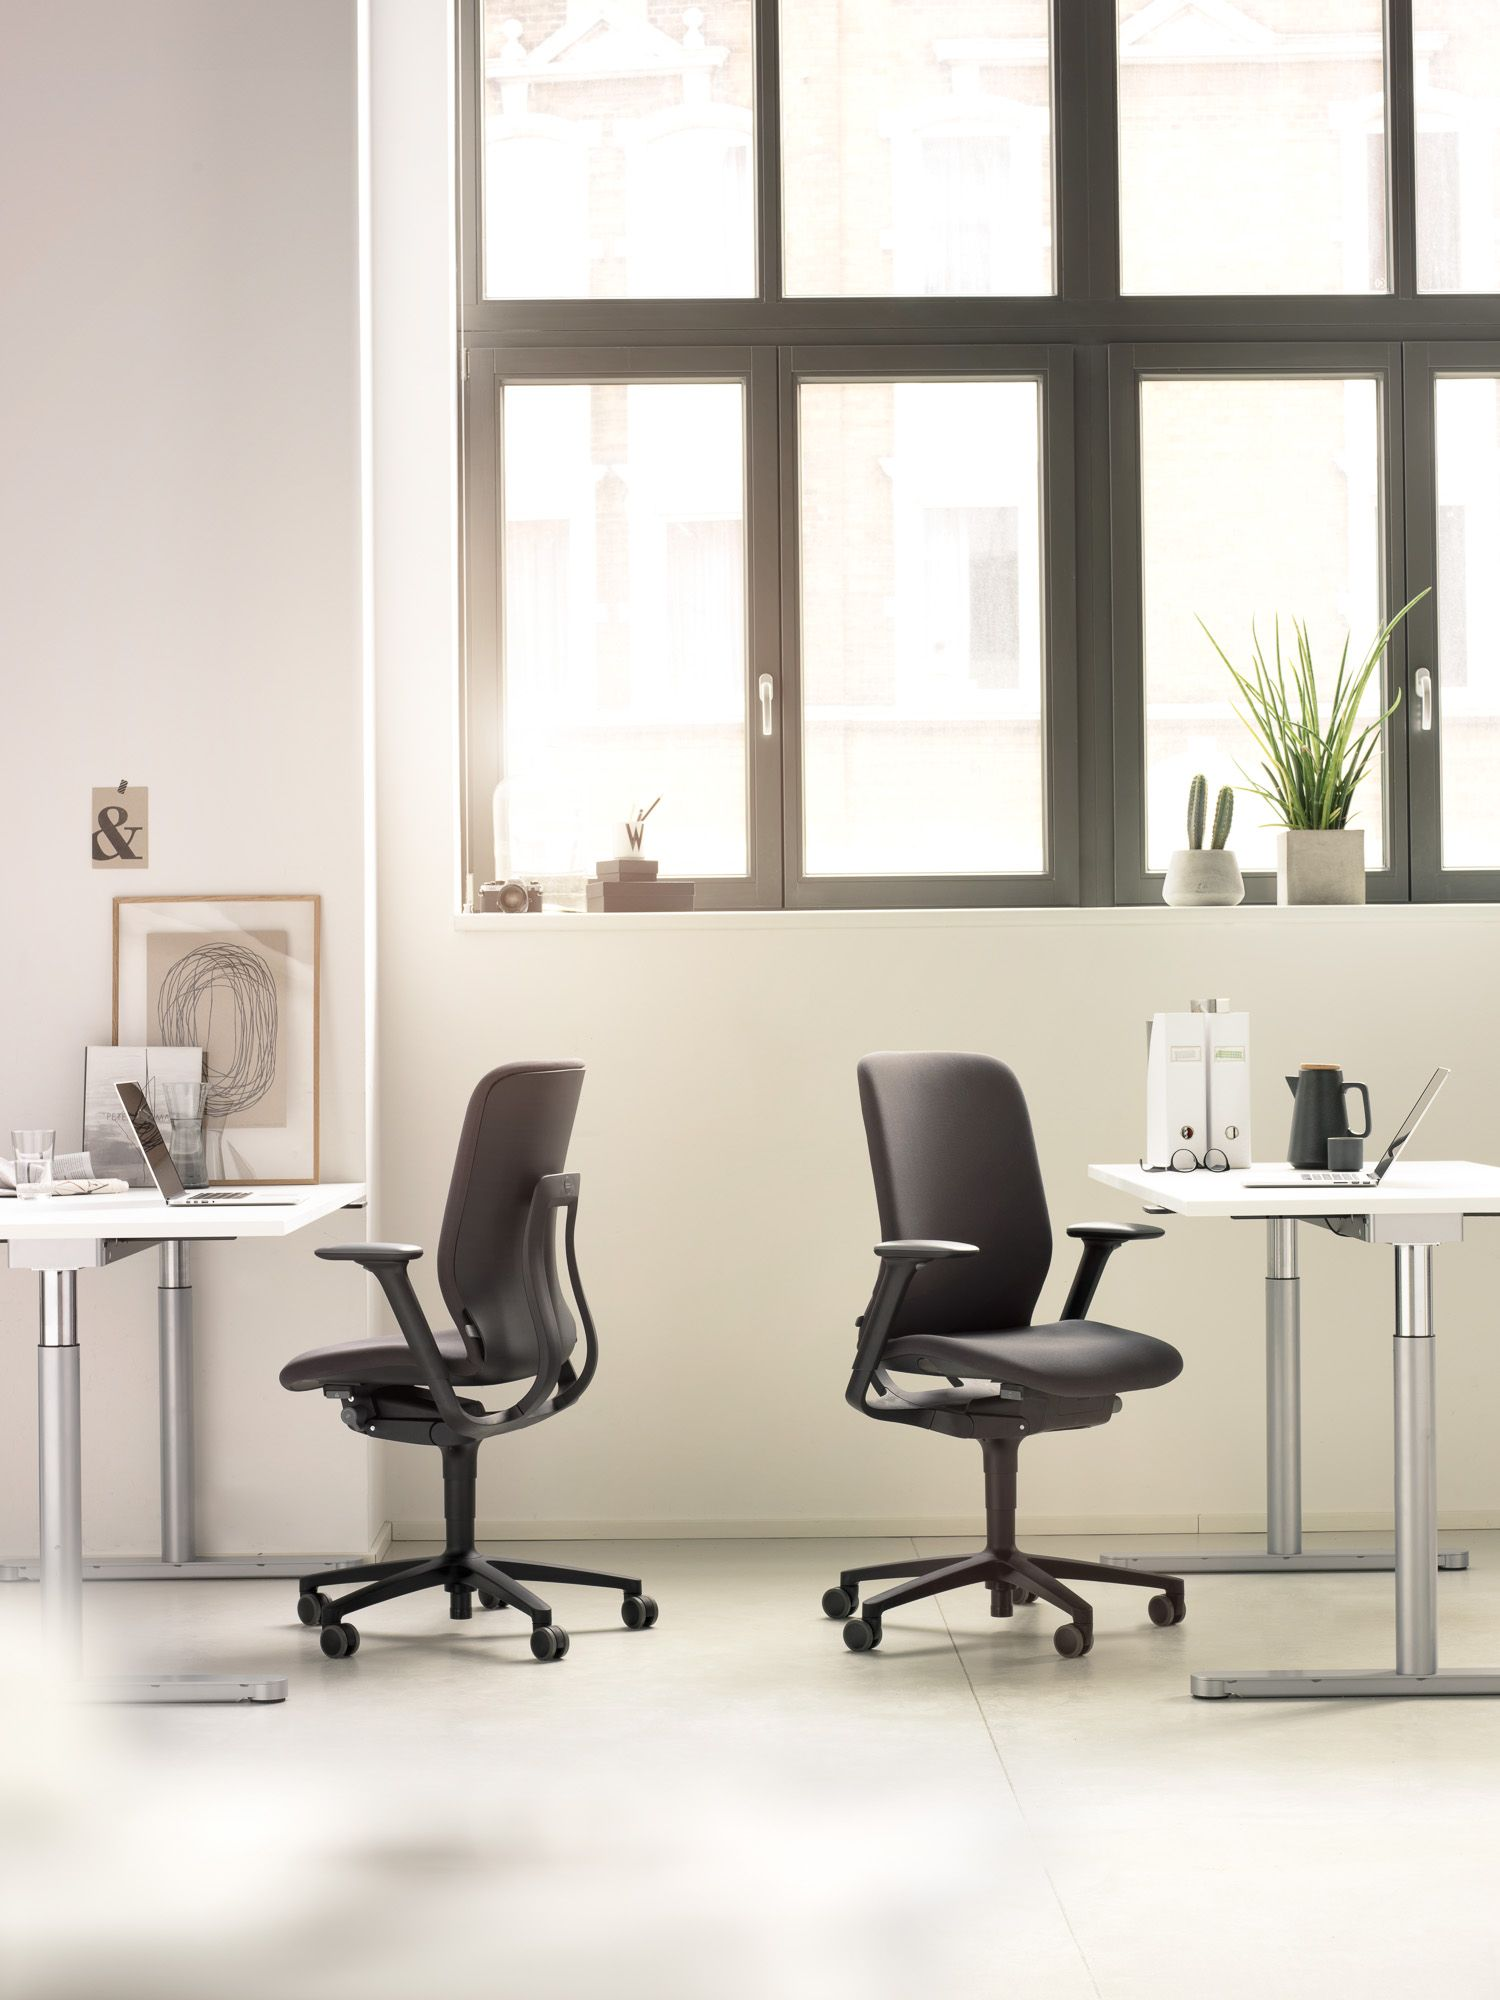 There S A Wide Range Of Models For Any Areas Requiring Office Chairs As Well As Covers From The Wilkhahn Fabric And L Chair Plastic Chair Design Chair Design